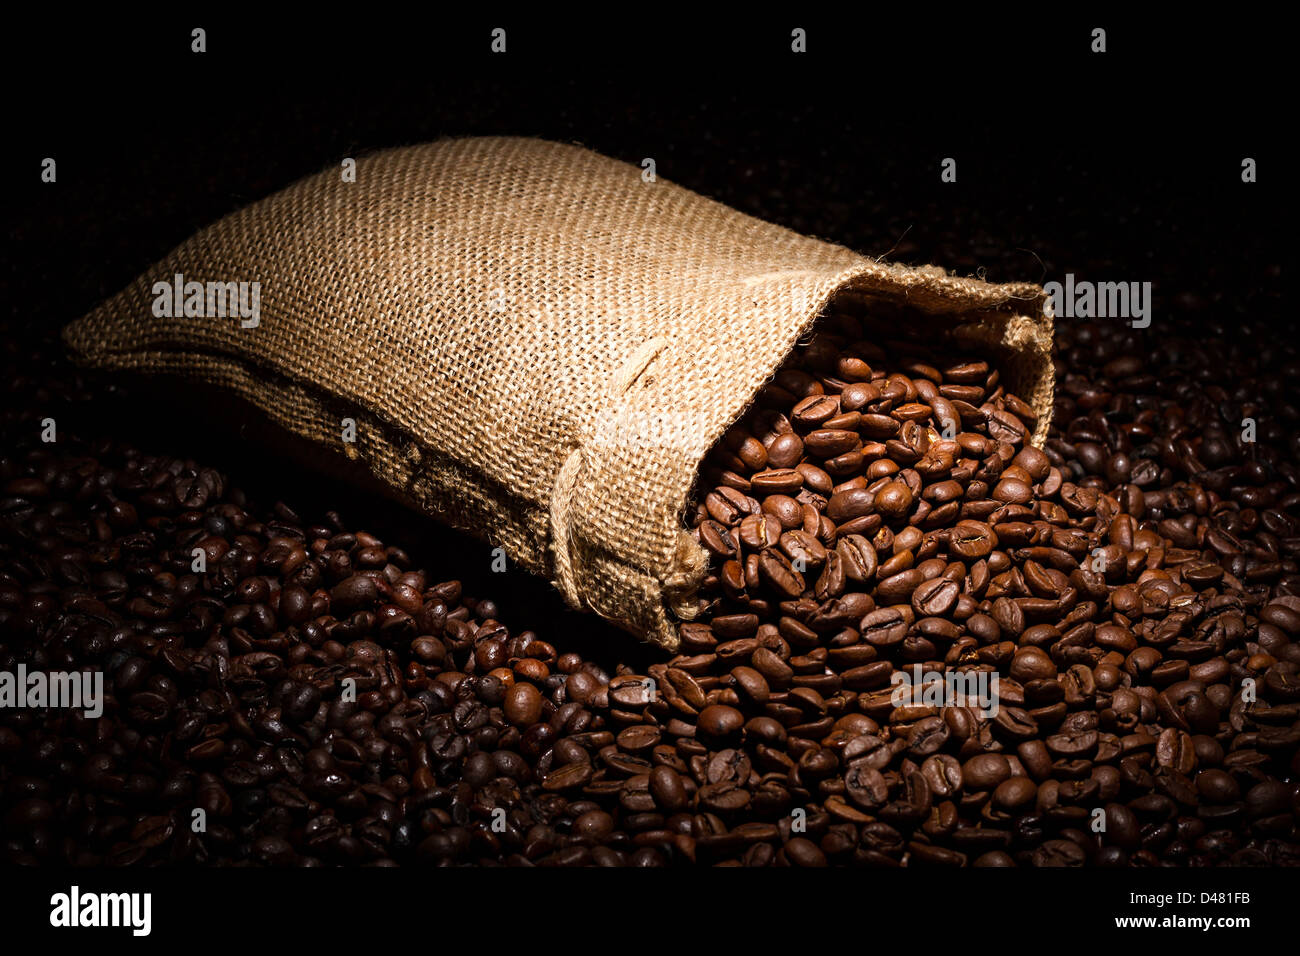 a spilled coffee bag in spotlight - Stock Image